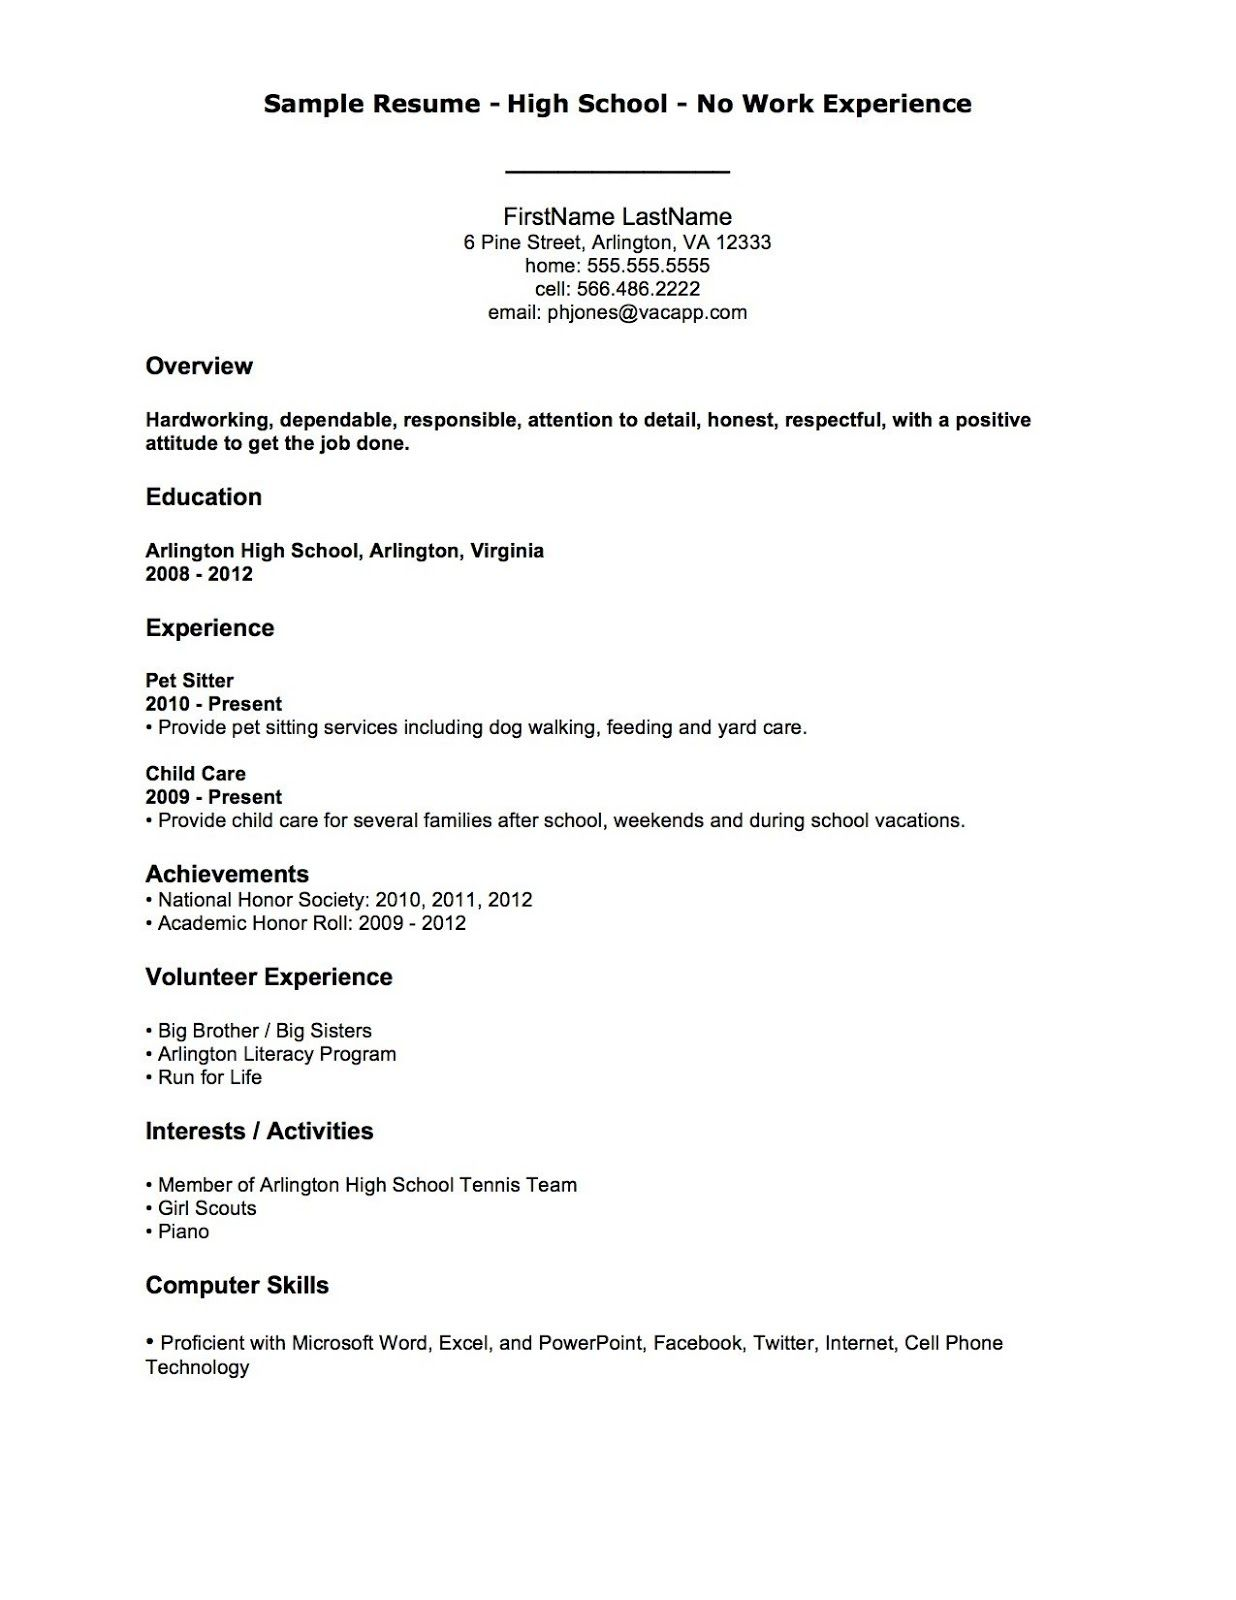 CNC Machine Operator Resume Templates - http://ersume.com/cnc ...